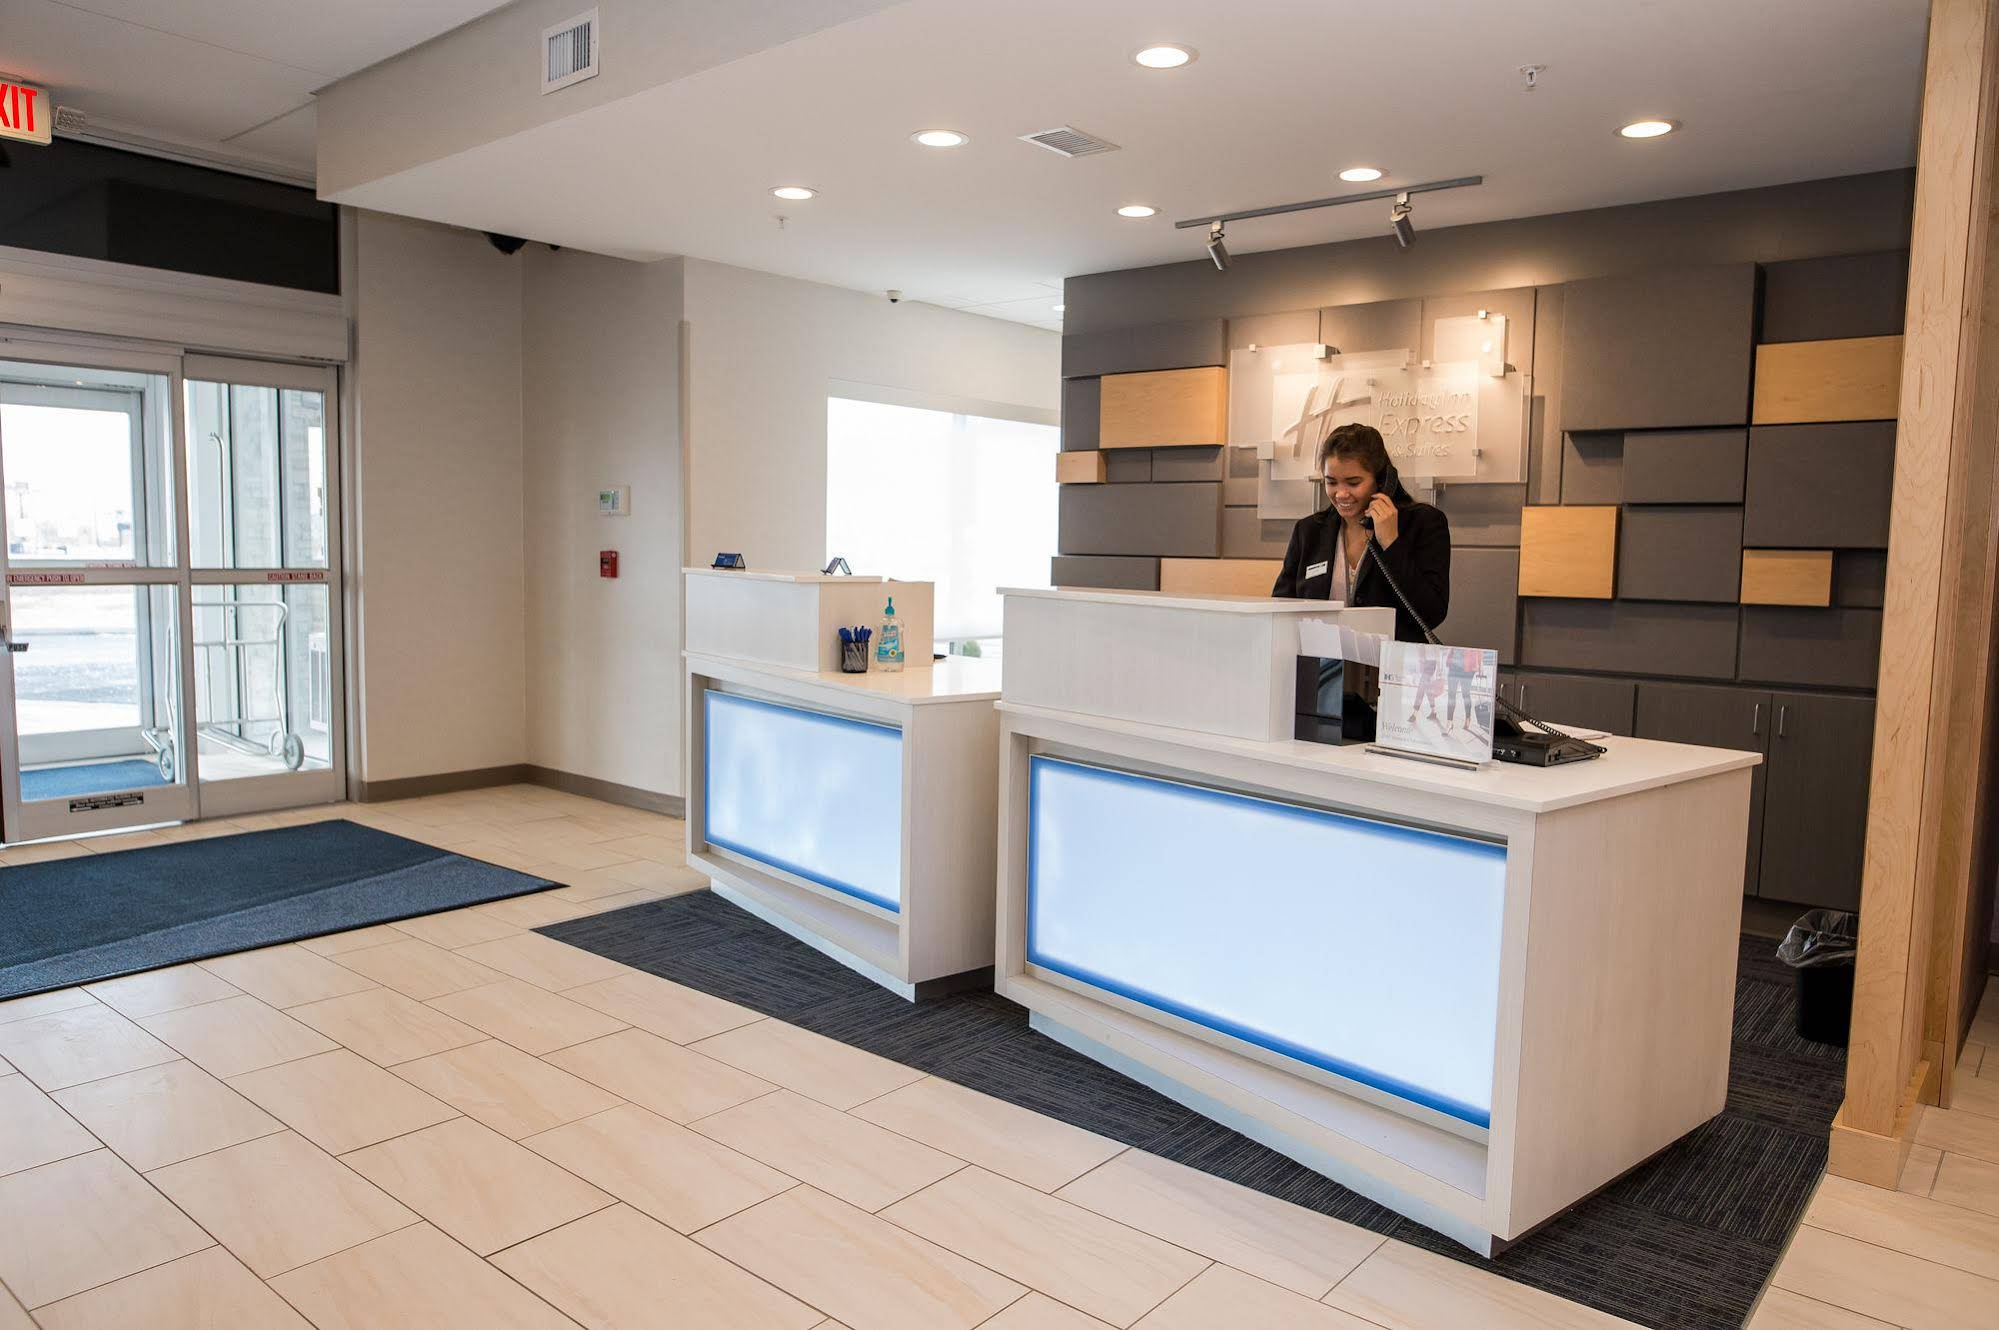 Holiday Inn Express and Suites Marietta